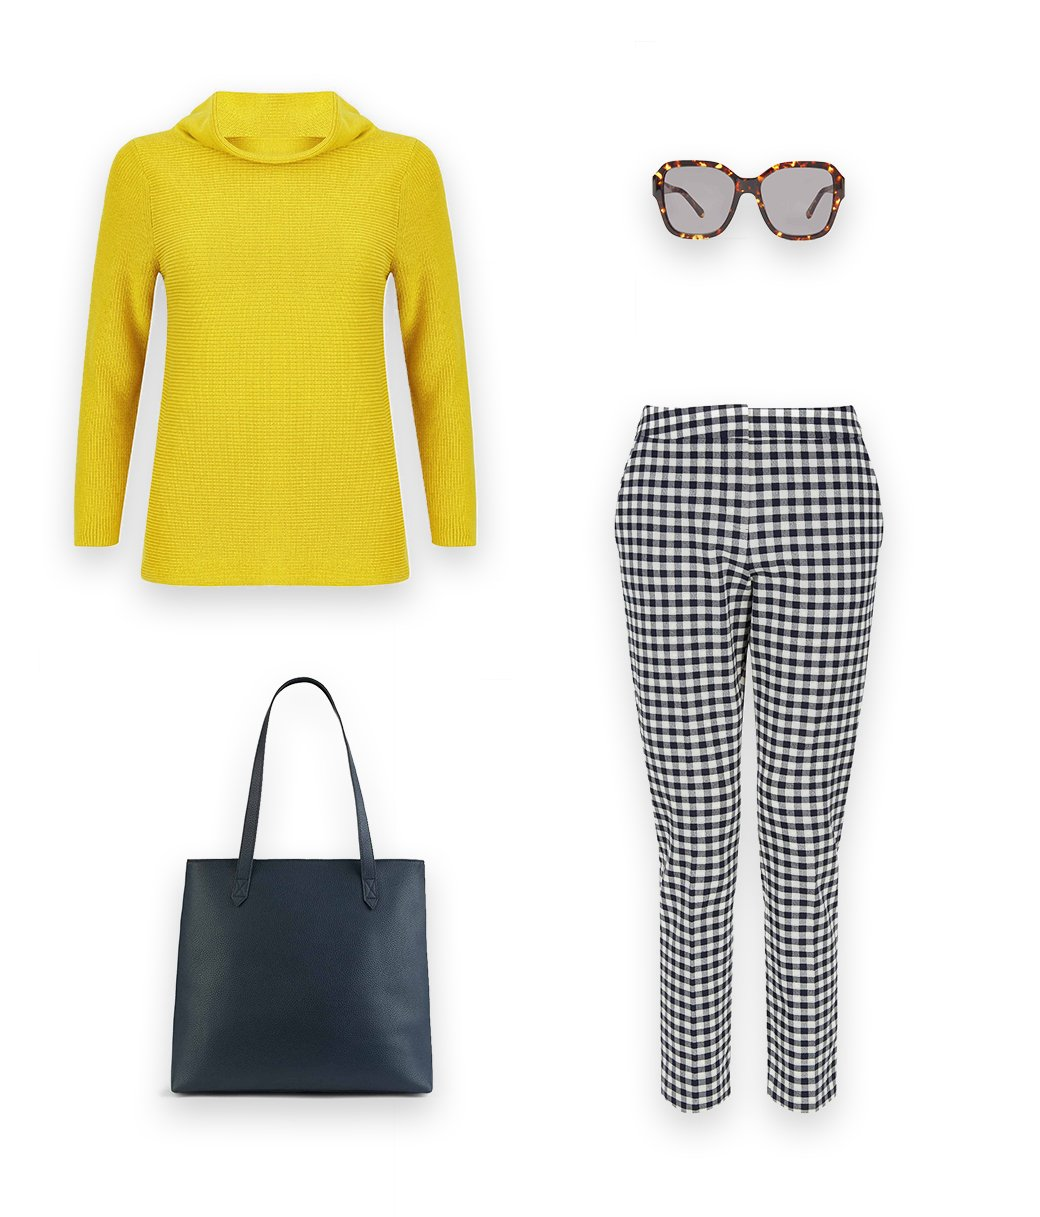 An effortless jumper outfit idea, style a yellow roll neck jumper with navy blue and white checked cropped trousers, sunglasses and a dark blue leather tote bag